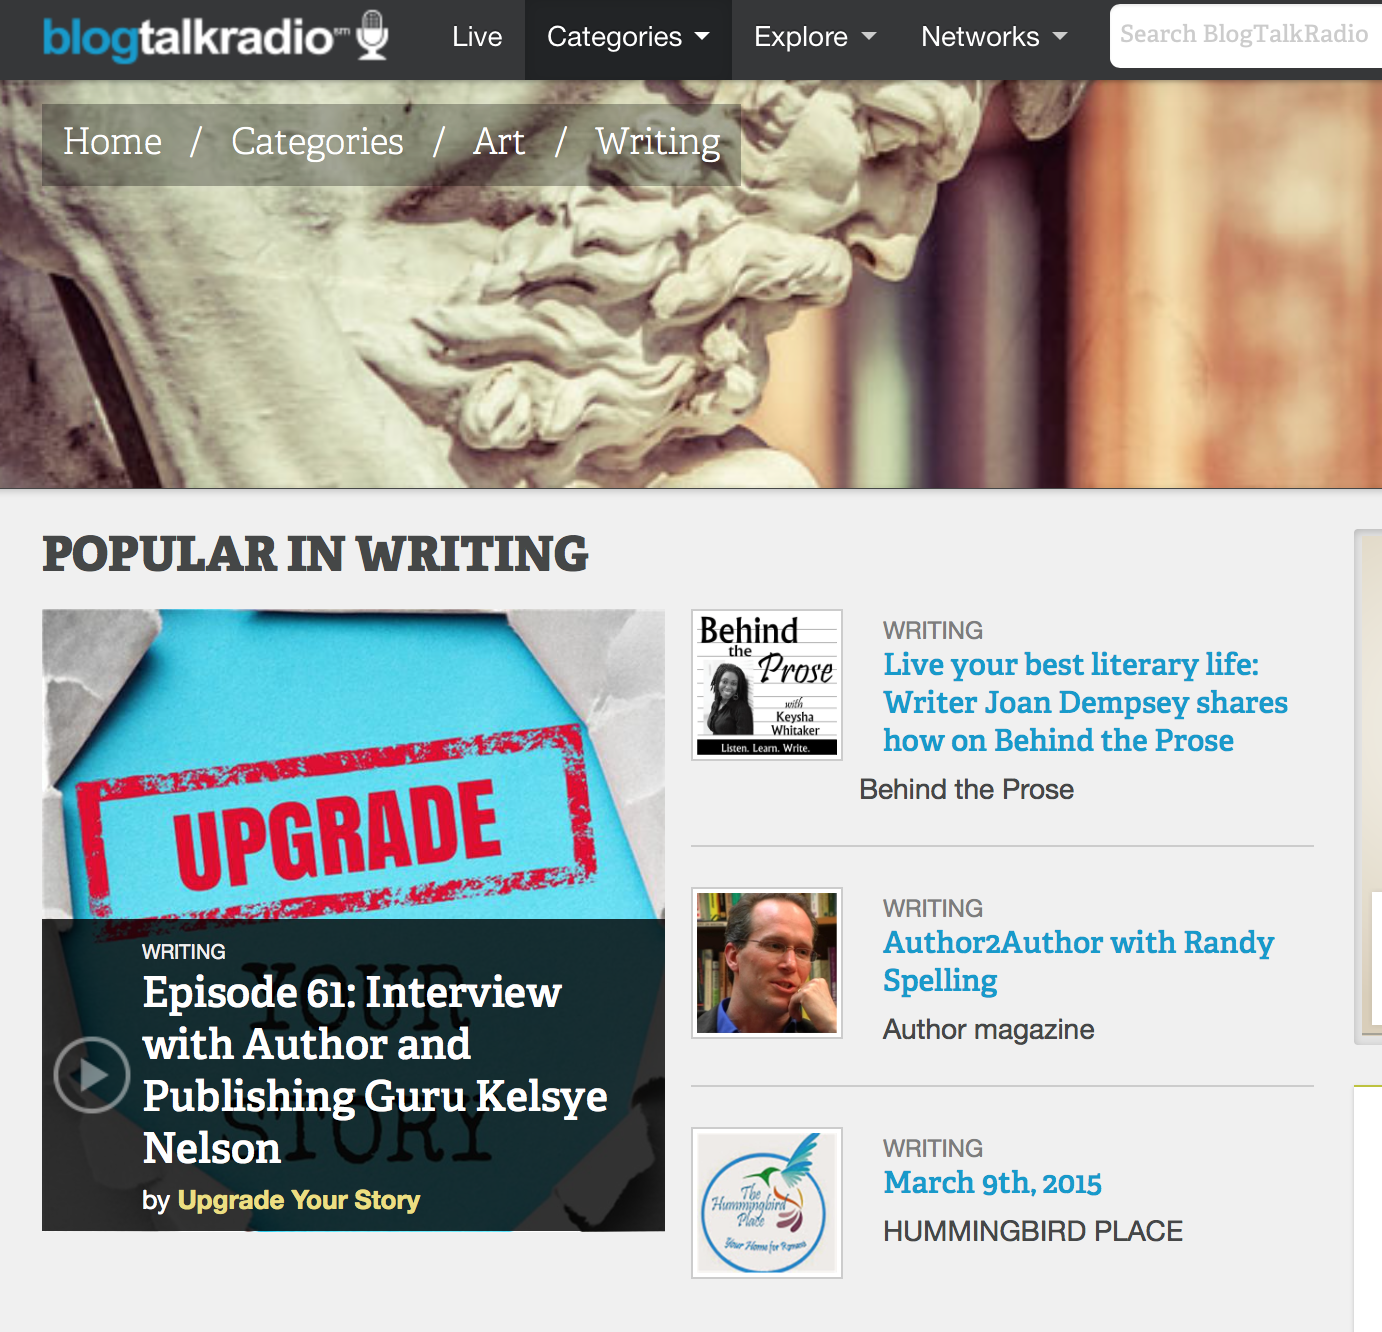 Joan Dempsey's Behind the Prose Episode is currently ranked #2 at BlogTalkRadio.com